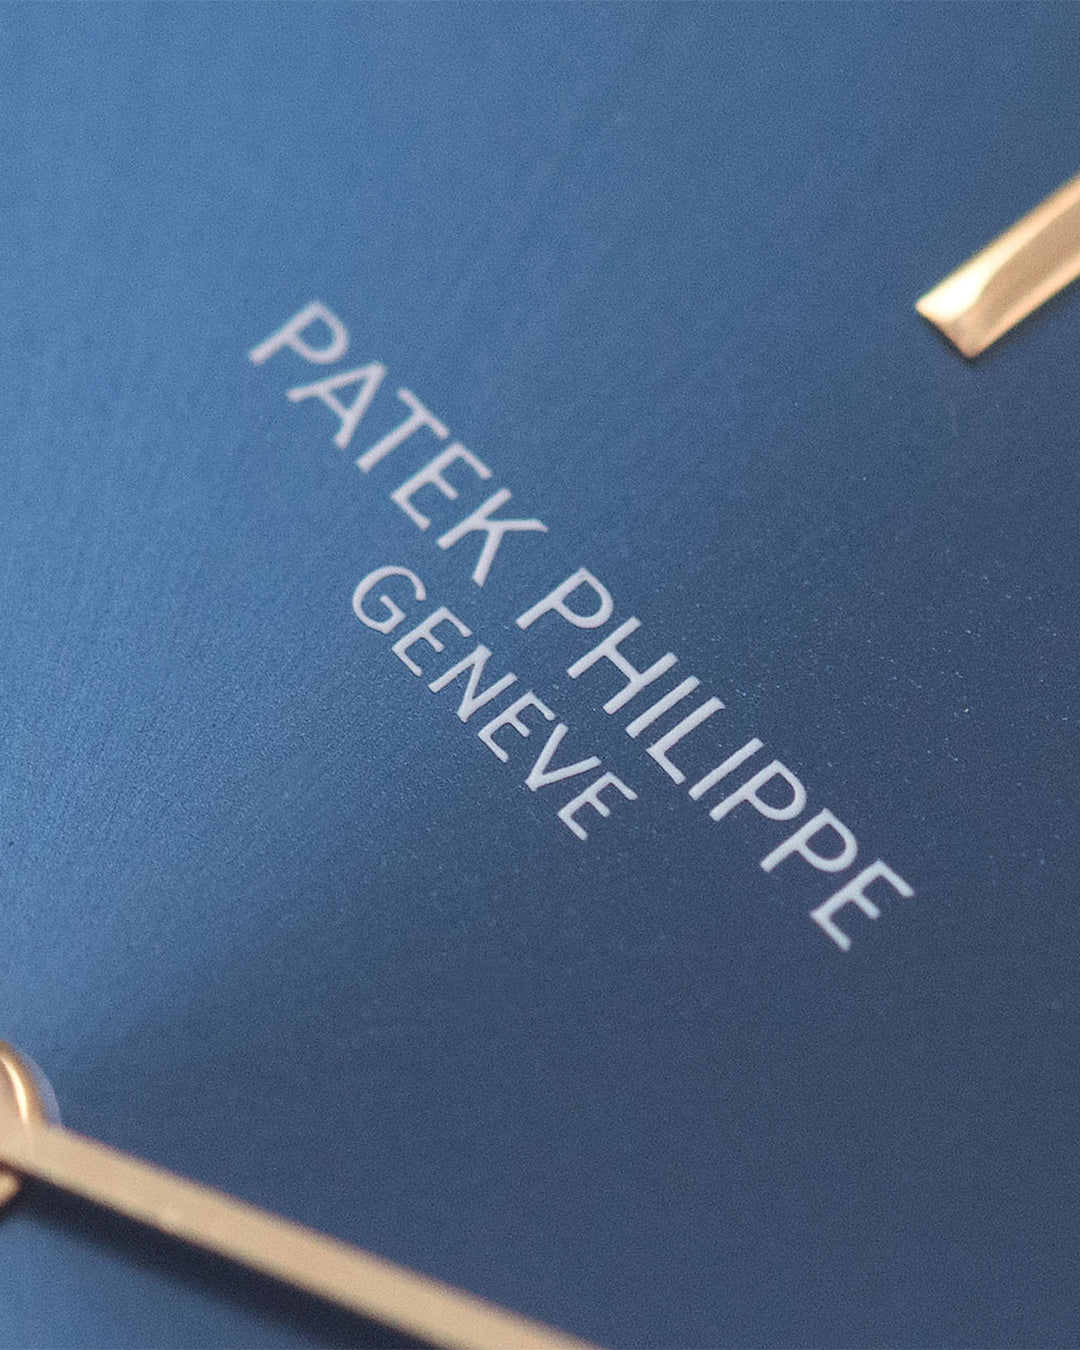 Patek Philippe Ellipse watch dial macro  In Why the Patek Philippe Golden Ellipse Should Matter Just as Much as the Nautilus for A Collected Man London